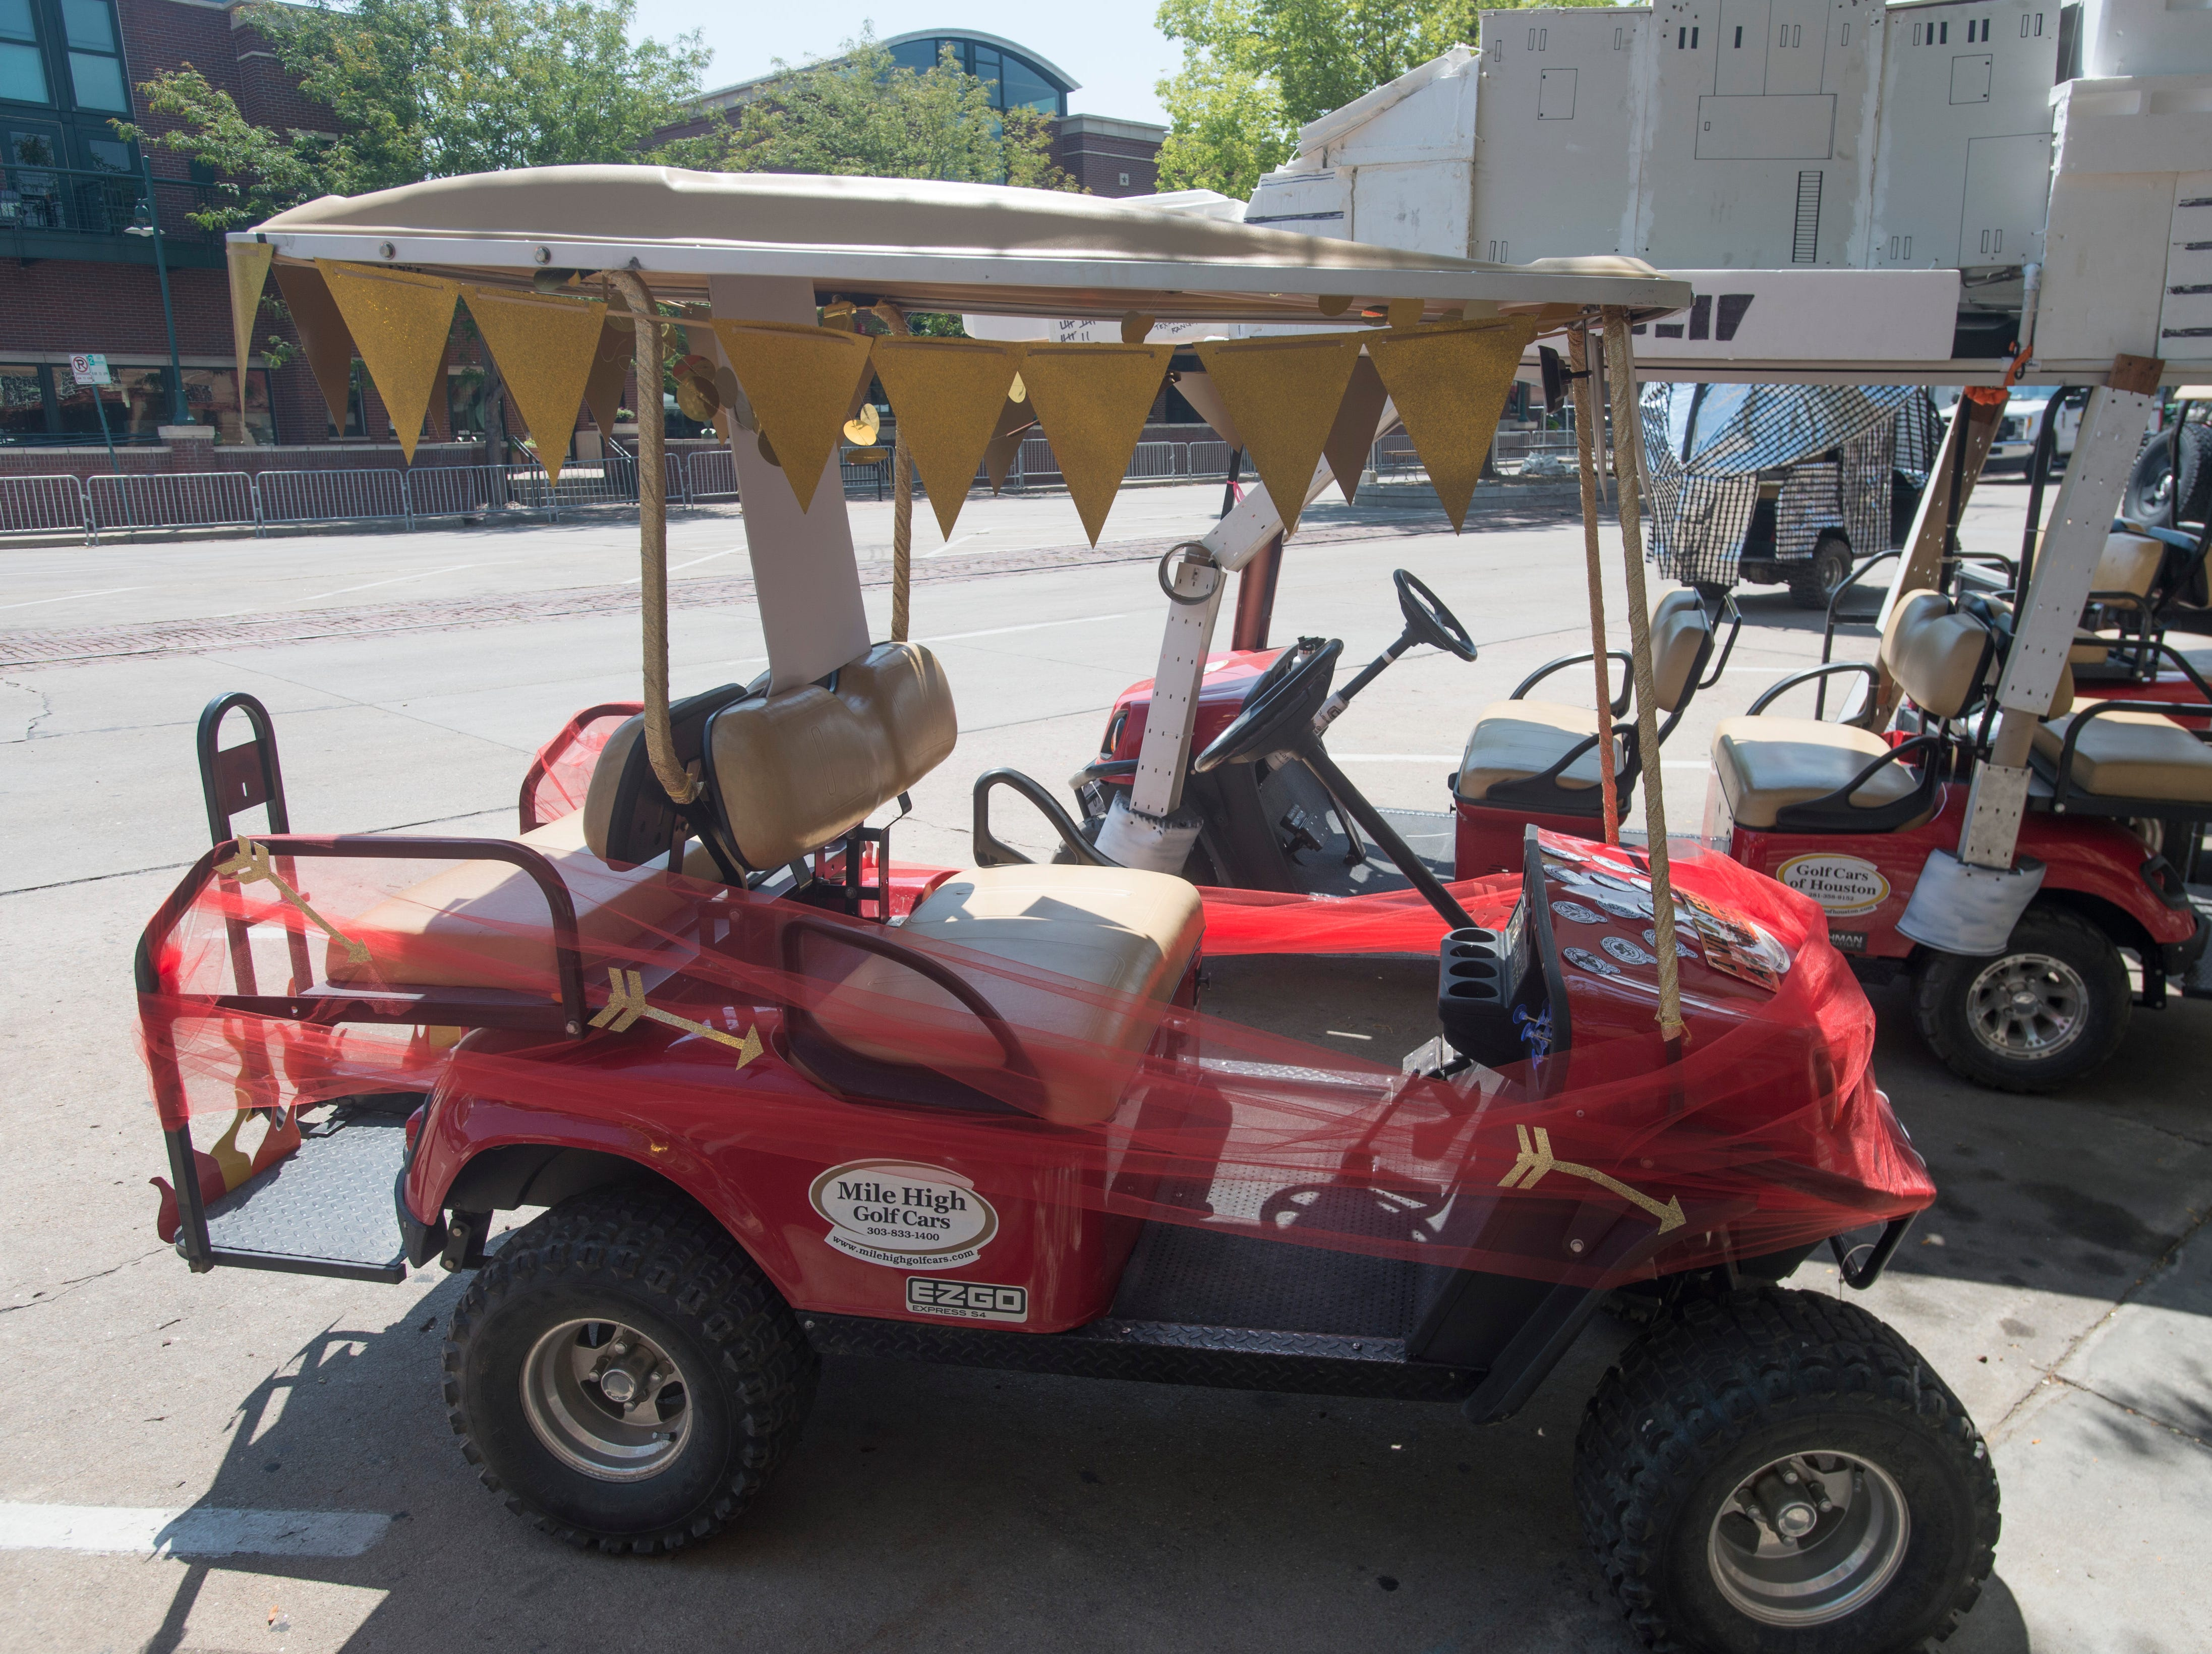 Golf Cart 6: Vote for your favorite NewWestFest decorated golf cart.